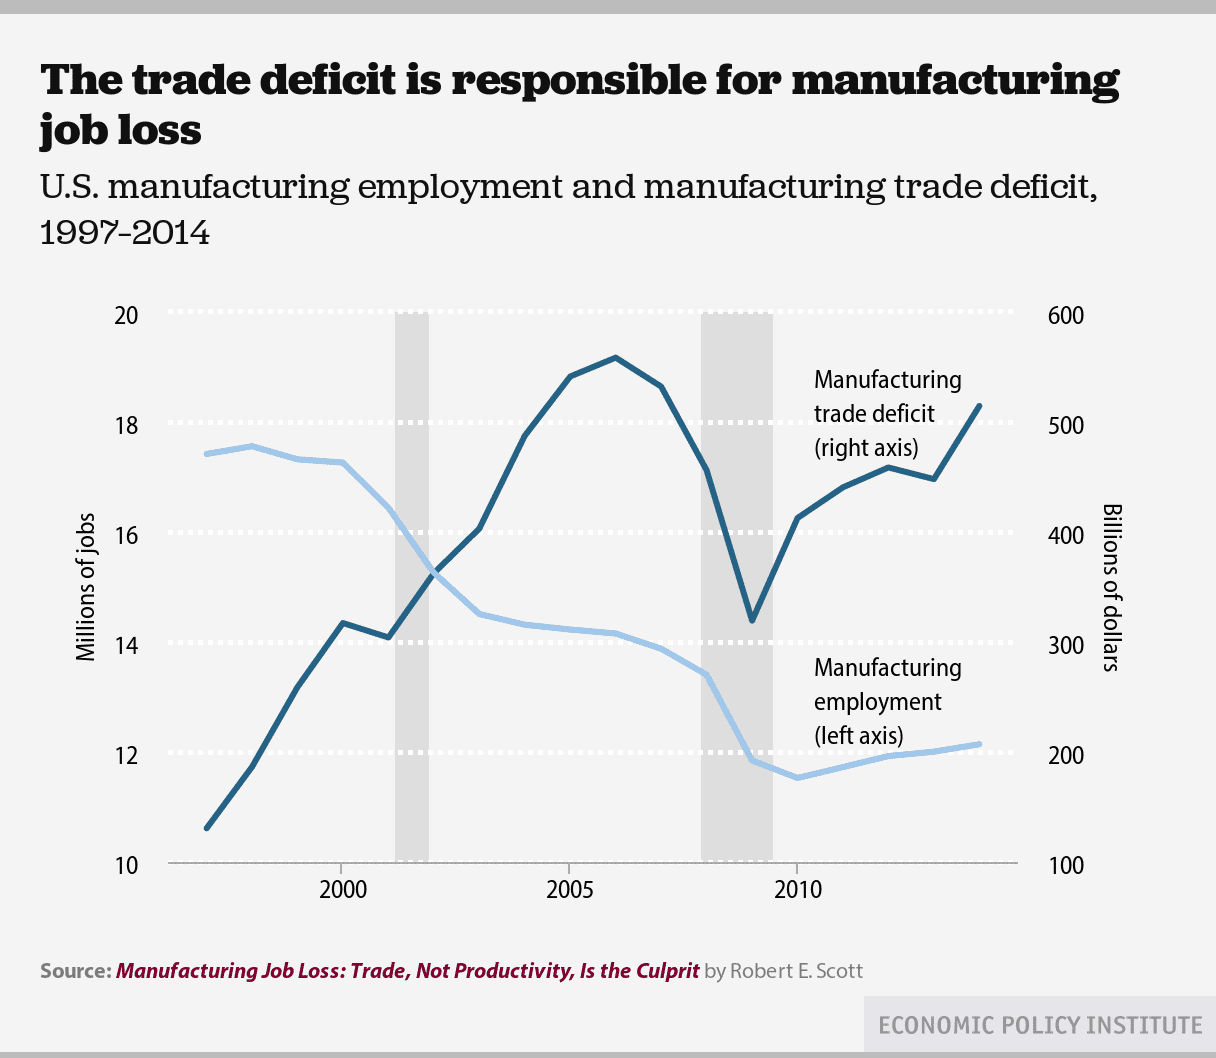 The Trade Deficit is Responsible for Manufacturing Job Loss